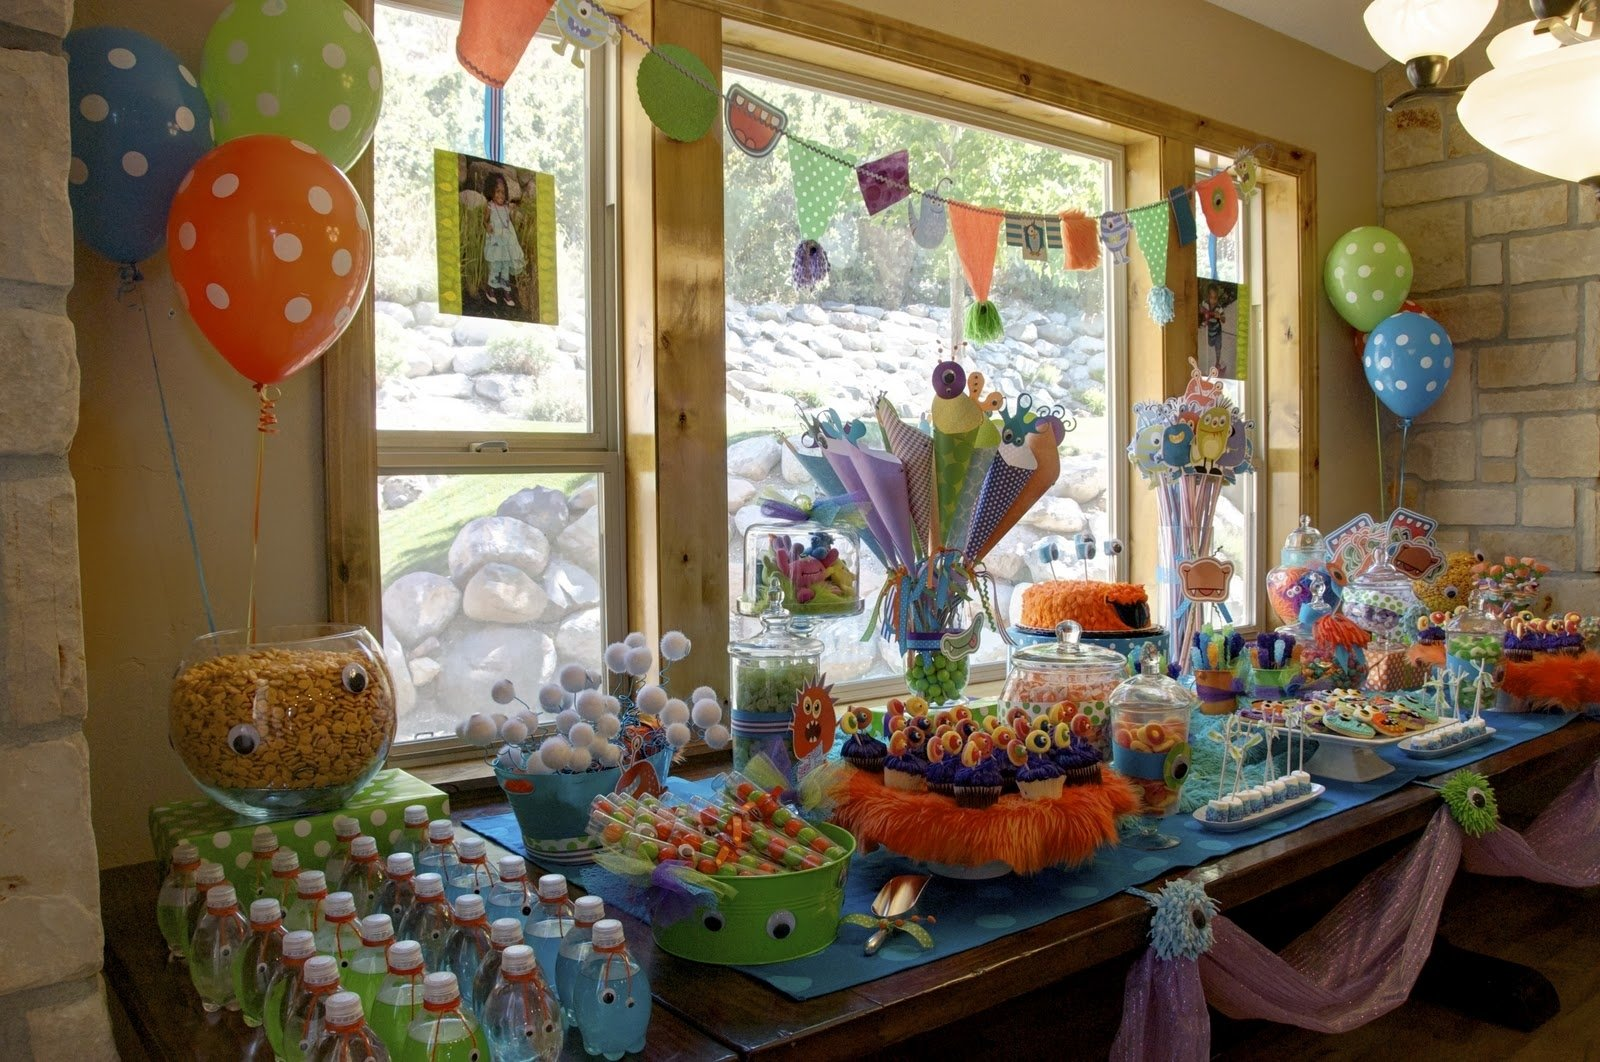 10 Awesome Three Year Old Birthday Party Ideas 3 year old birthday party ideas nisartmacka 11 2021